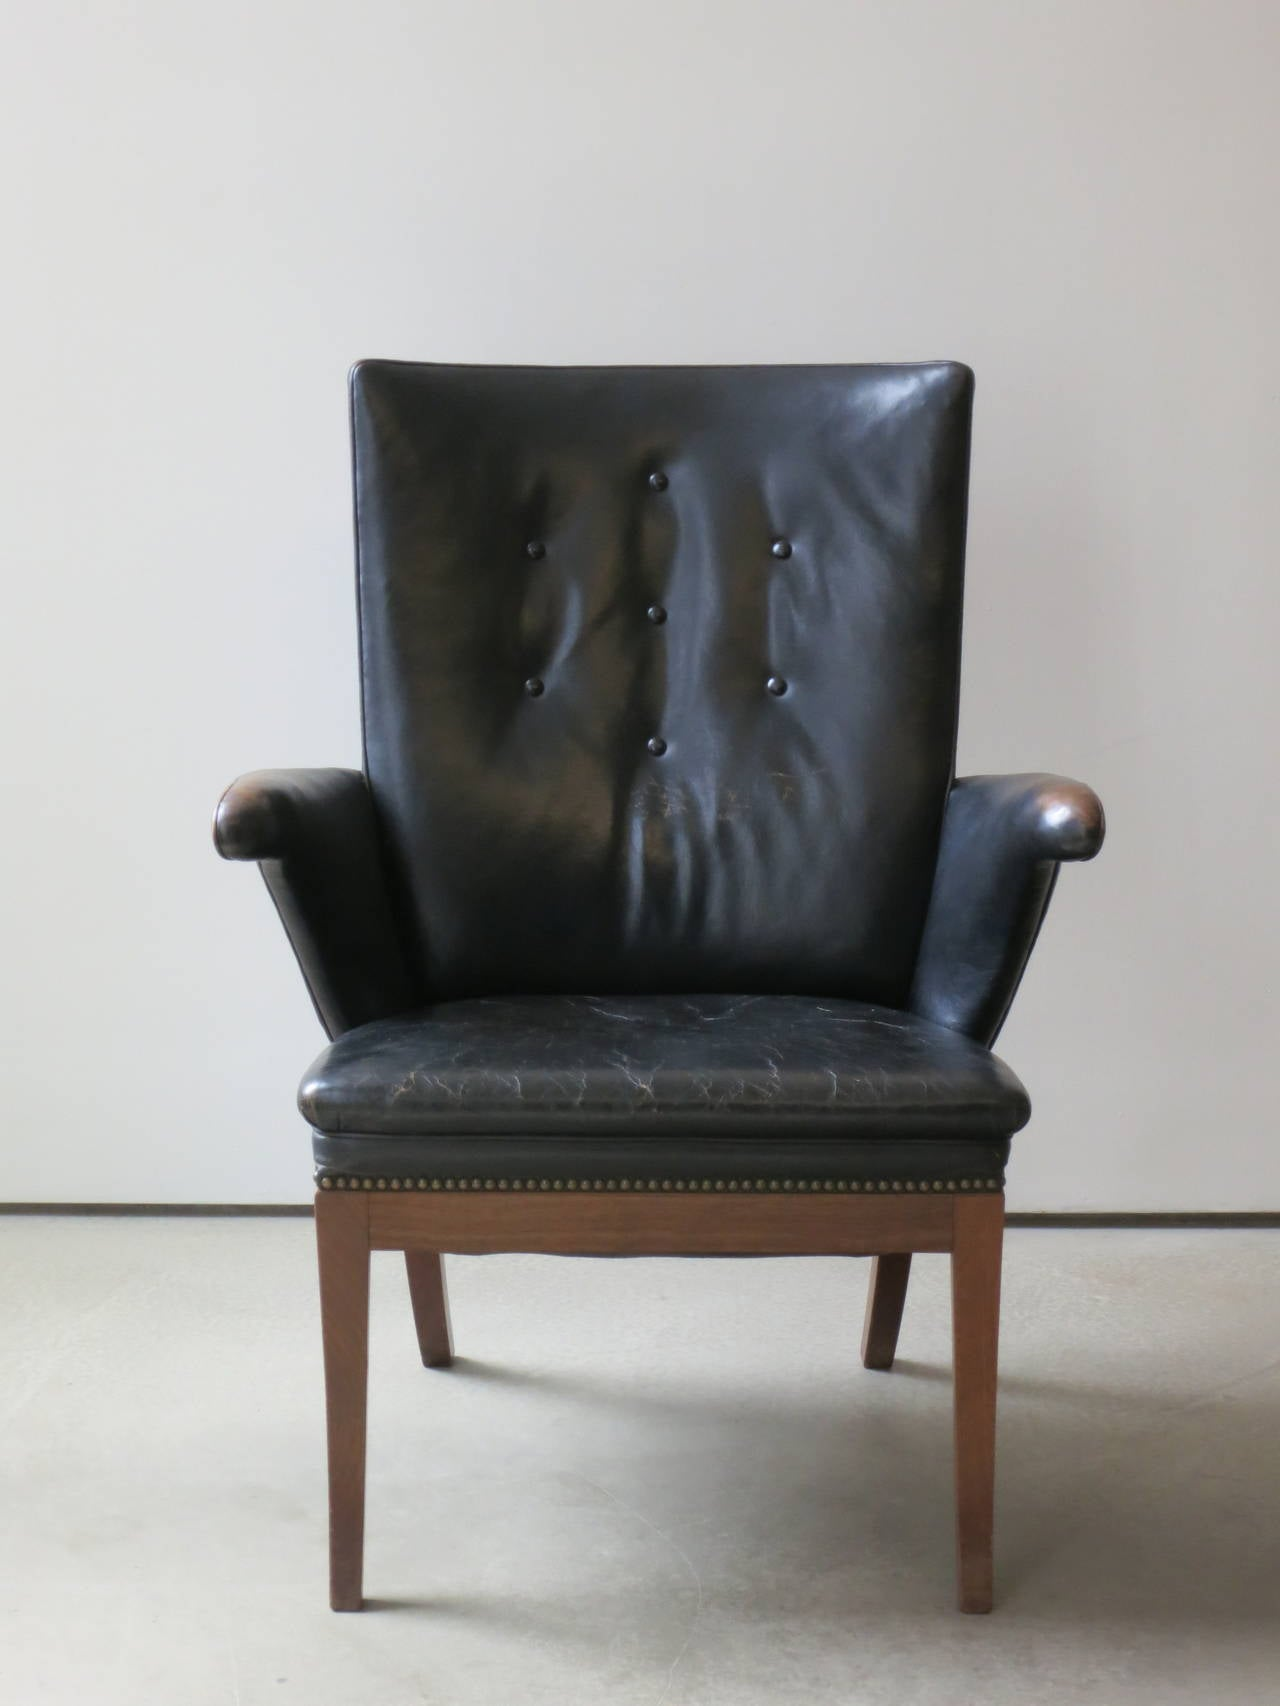 Armchair in Original Black-Brown Leather by Frits Henningsen, 1930s In Excellent Condition For Sale In New York, NY